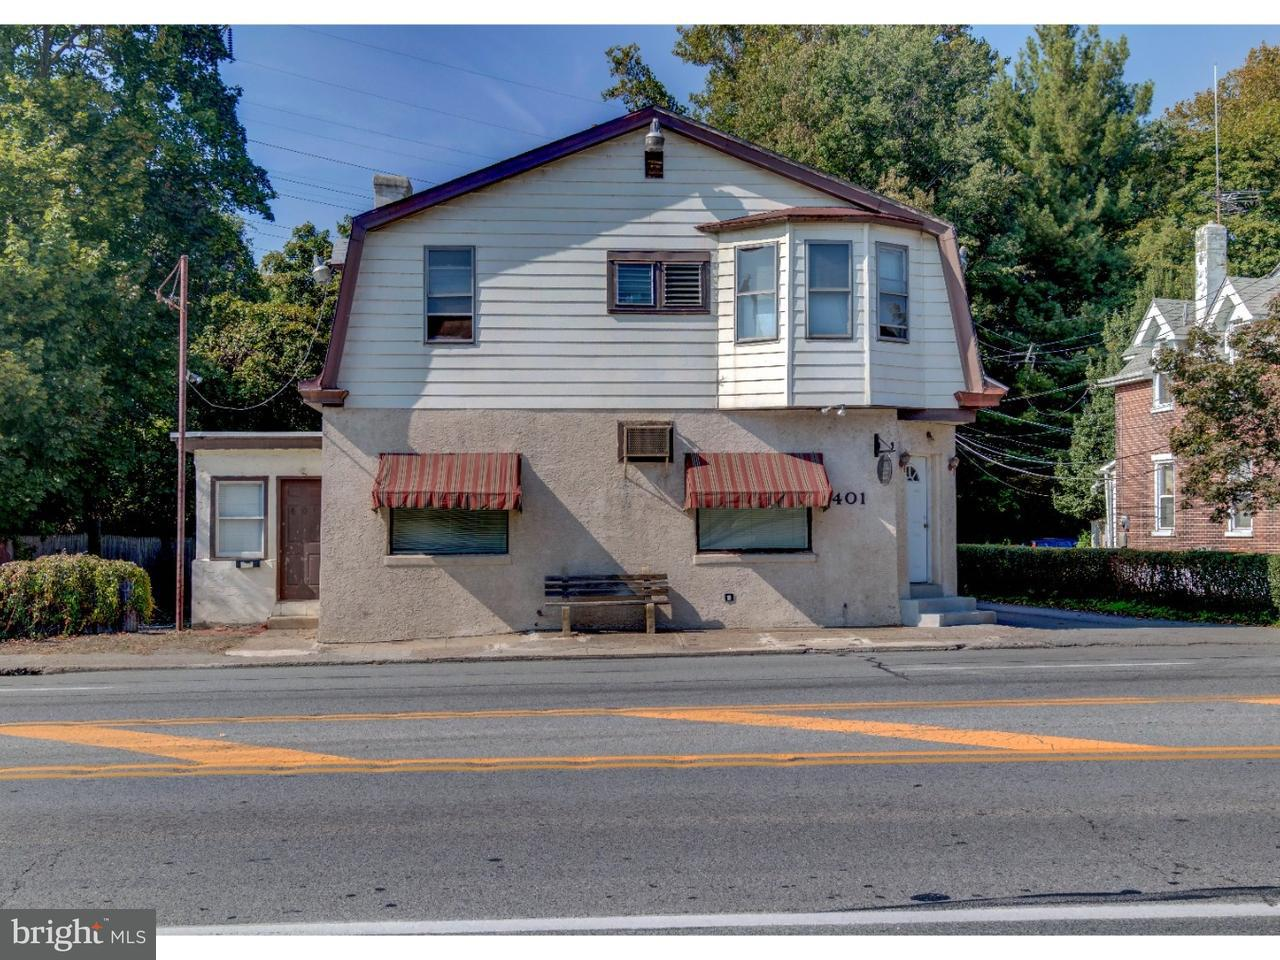 Single Family Home for Sale at 401 W CHESTER PIKE Ridley Park, Pennsylvania 19078 United States